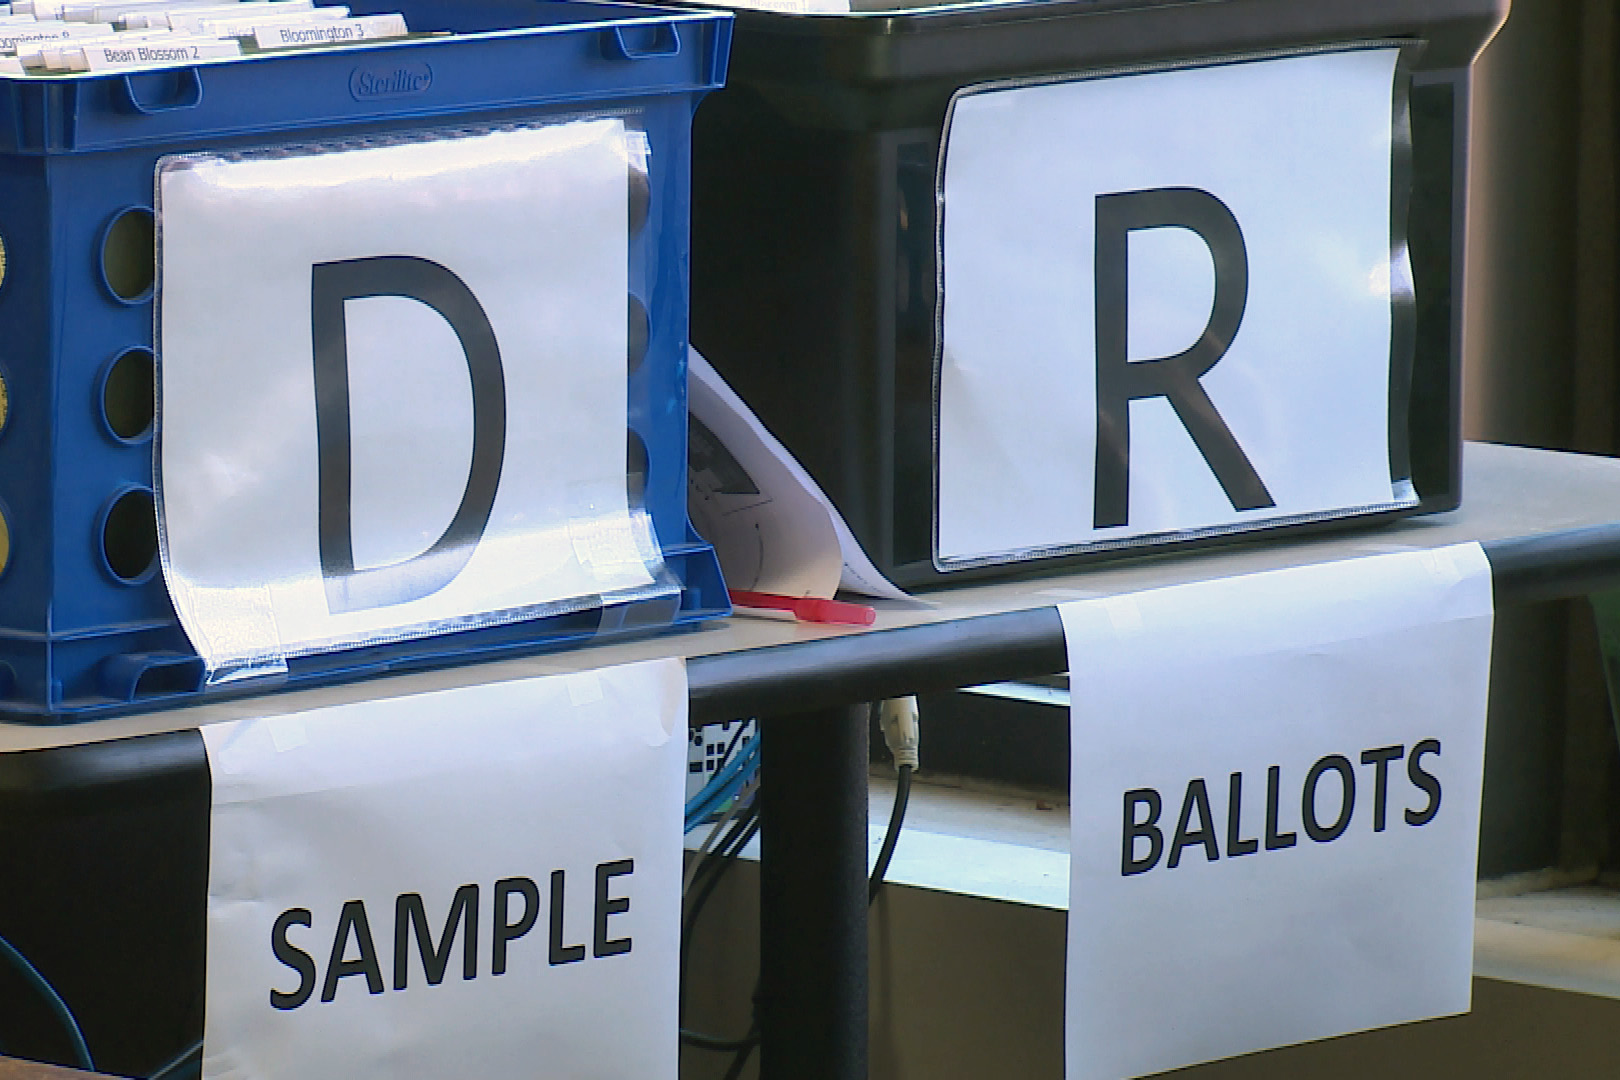 d-and-r-sample-ballots_steve-burns.jpg